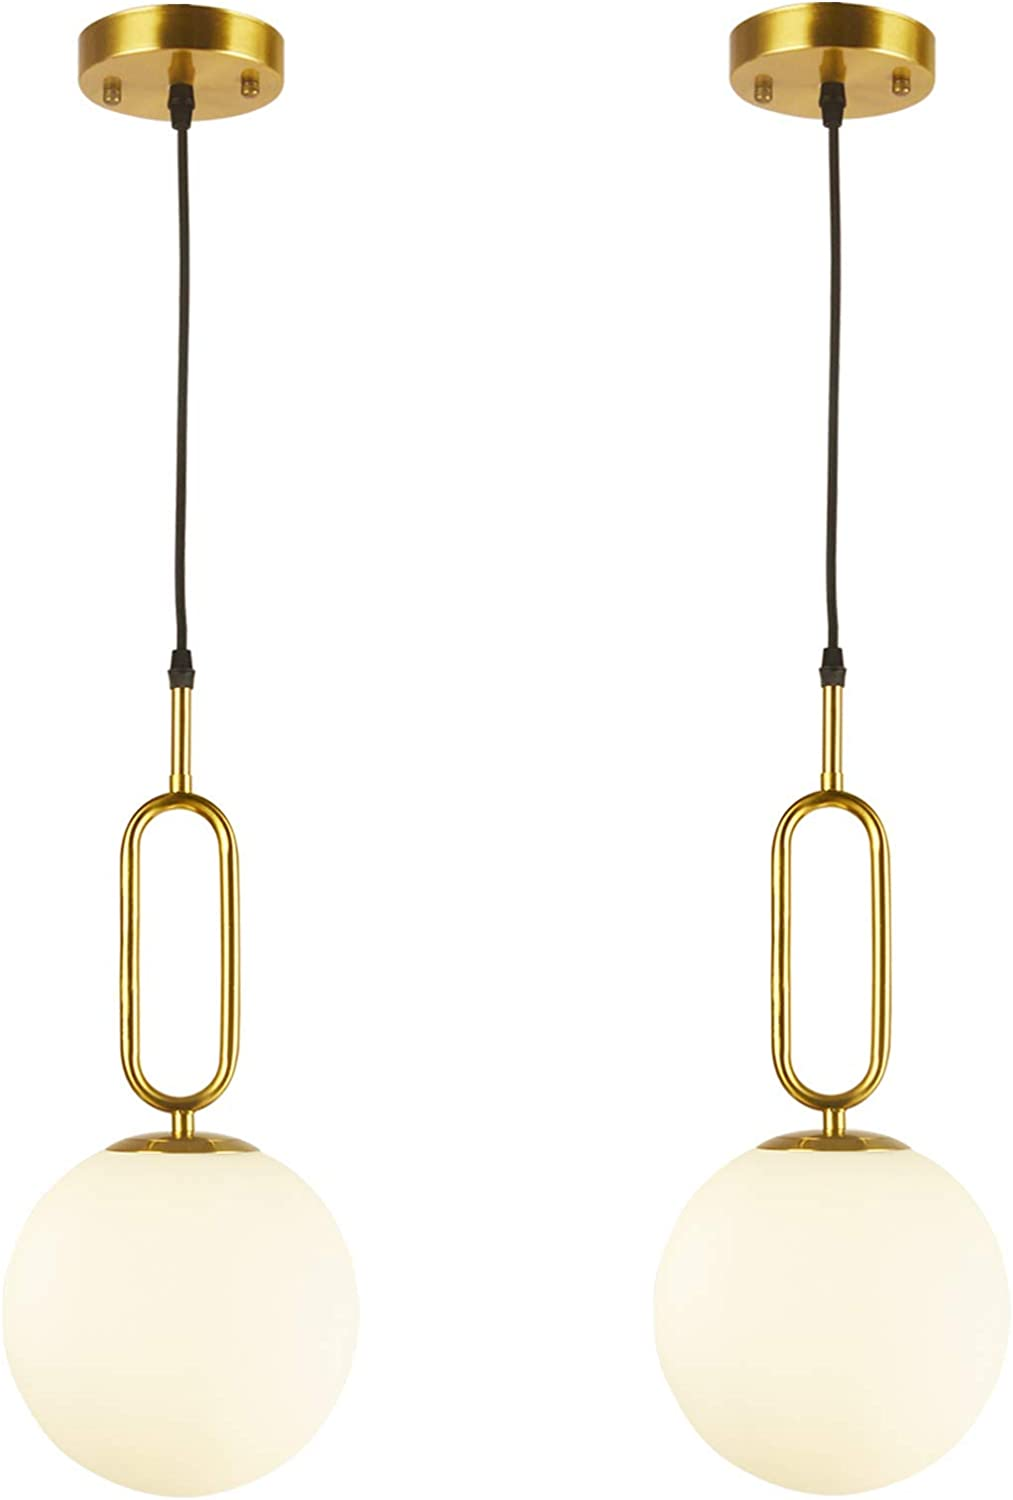 BAODEN 211 Lights Modern Globe Pendant Light Fixture Set of 21 Mid Century  Chandelier Brushed Brass Finished with White Globe Glass Lampshade Living  Room ...